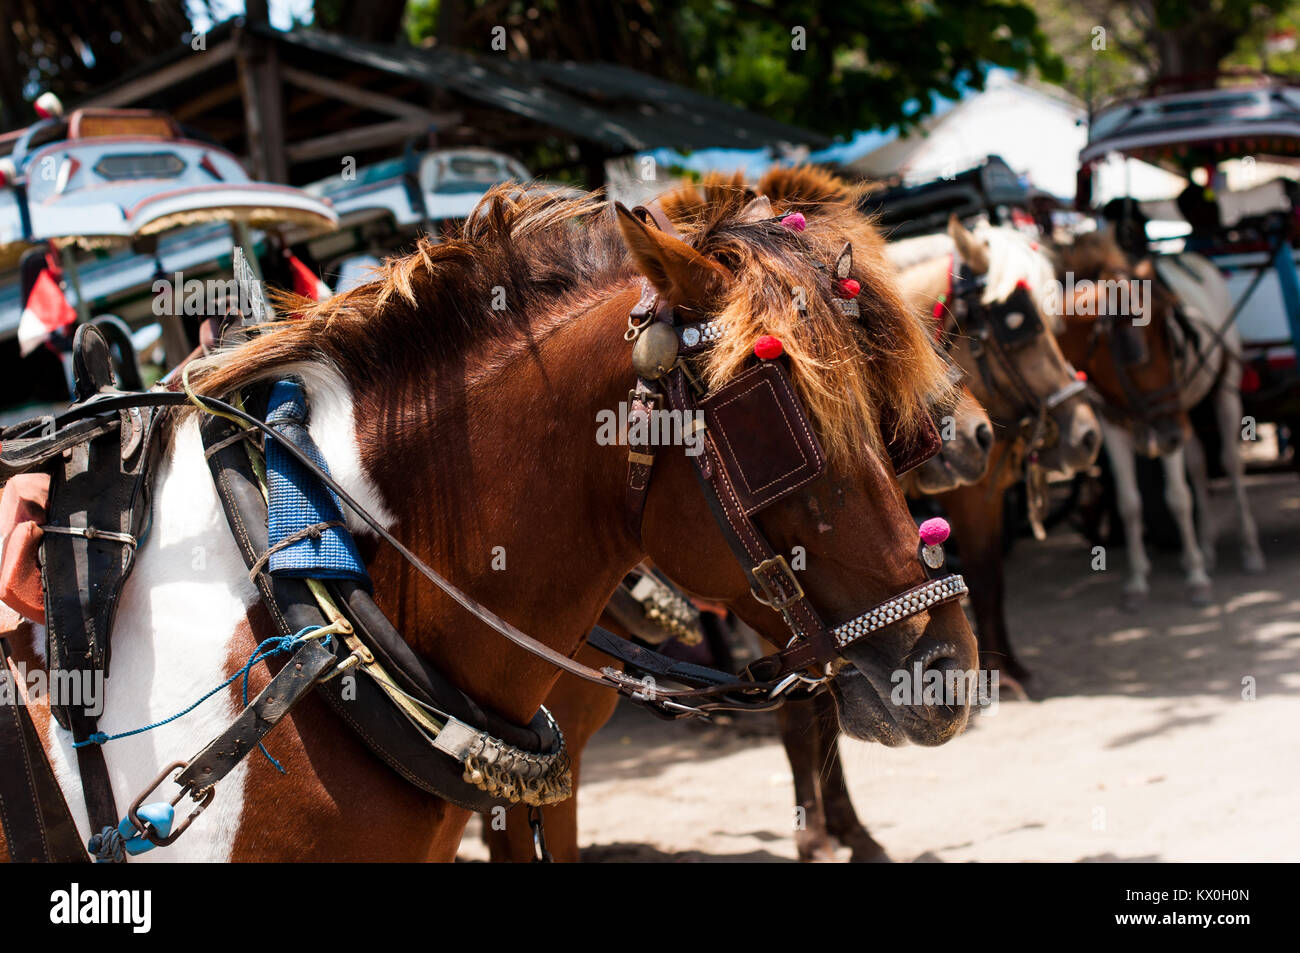 Indonesia, Lombok, Gili archipelago, Gili Air, the only mean of transport is the cidomo, horse drawn carriage - Stock Image